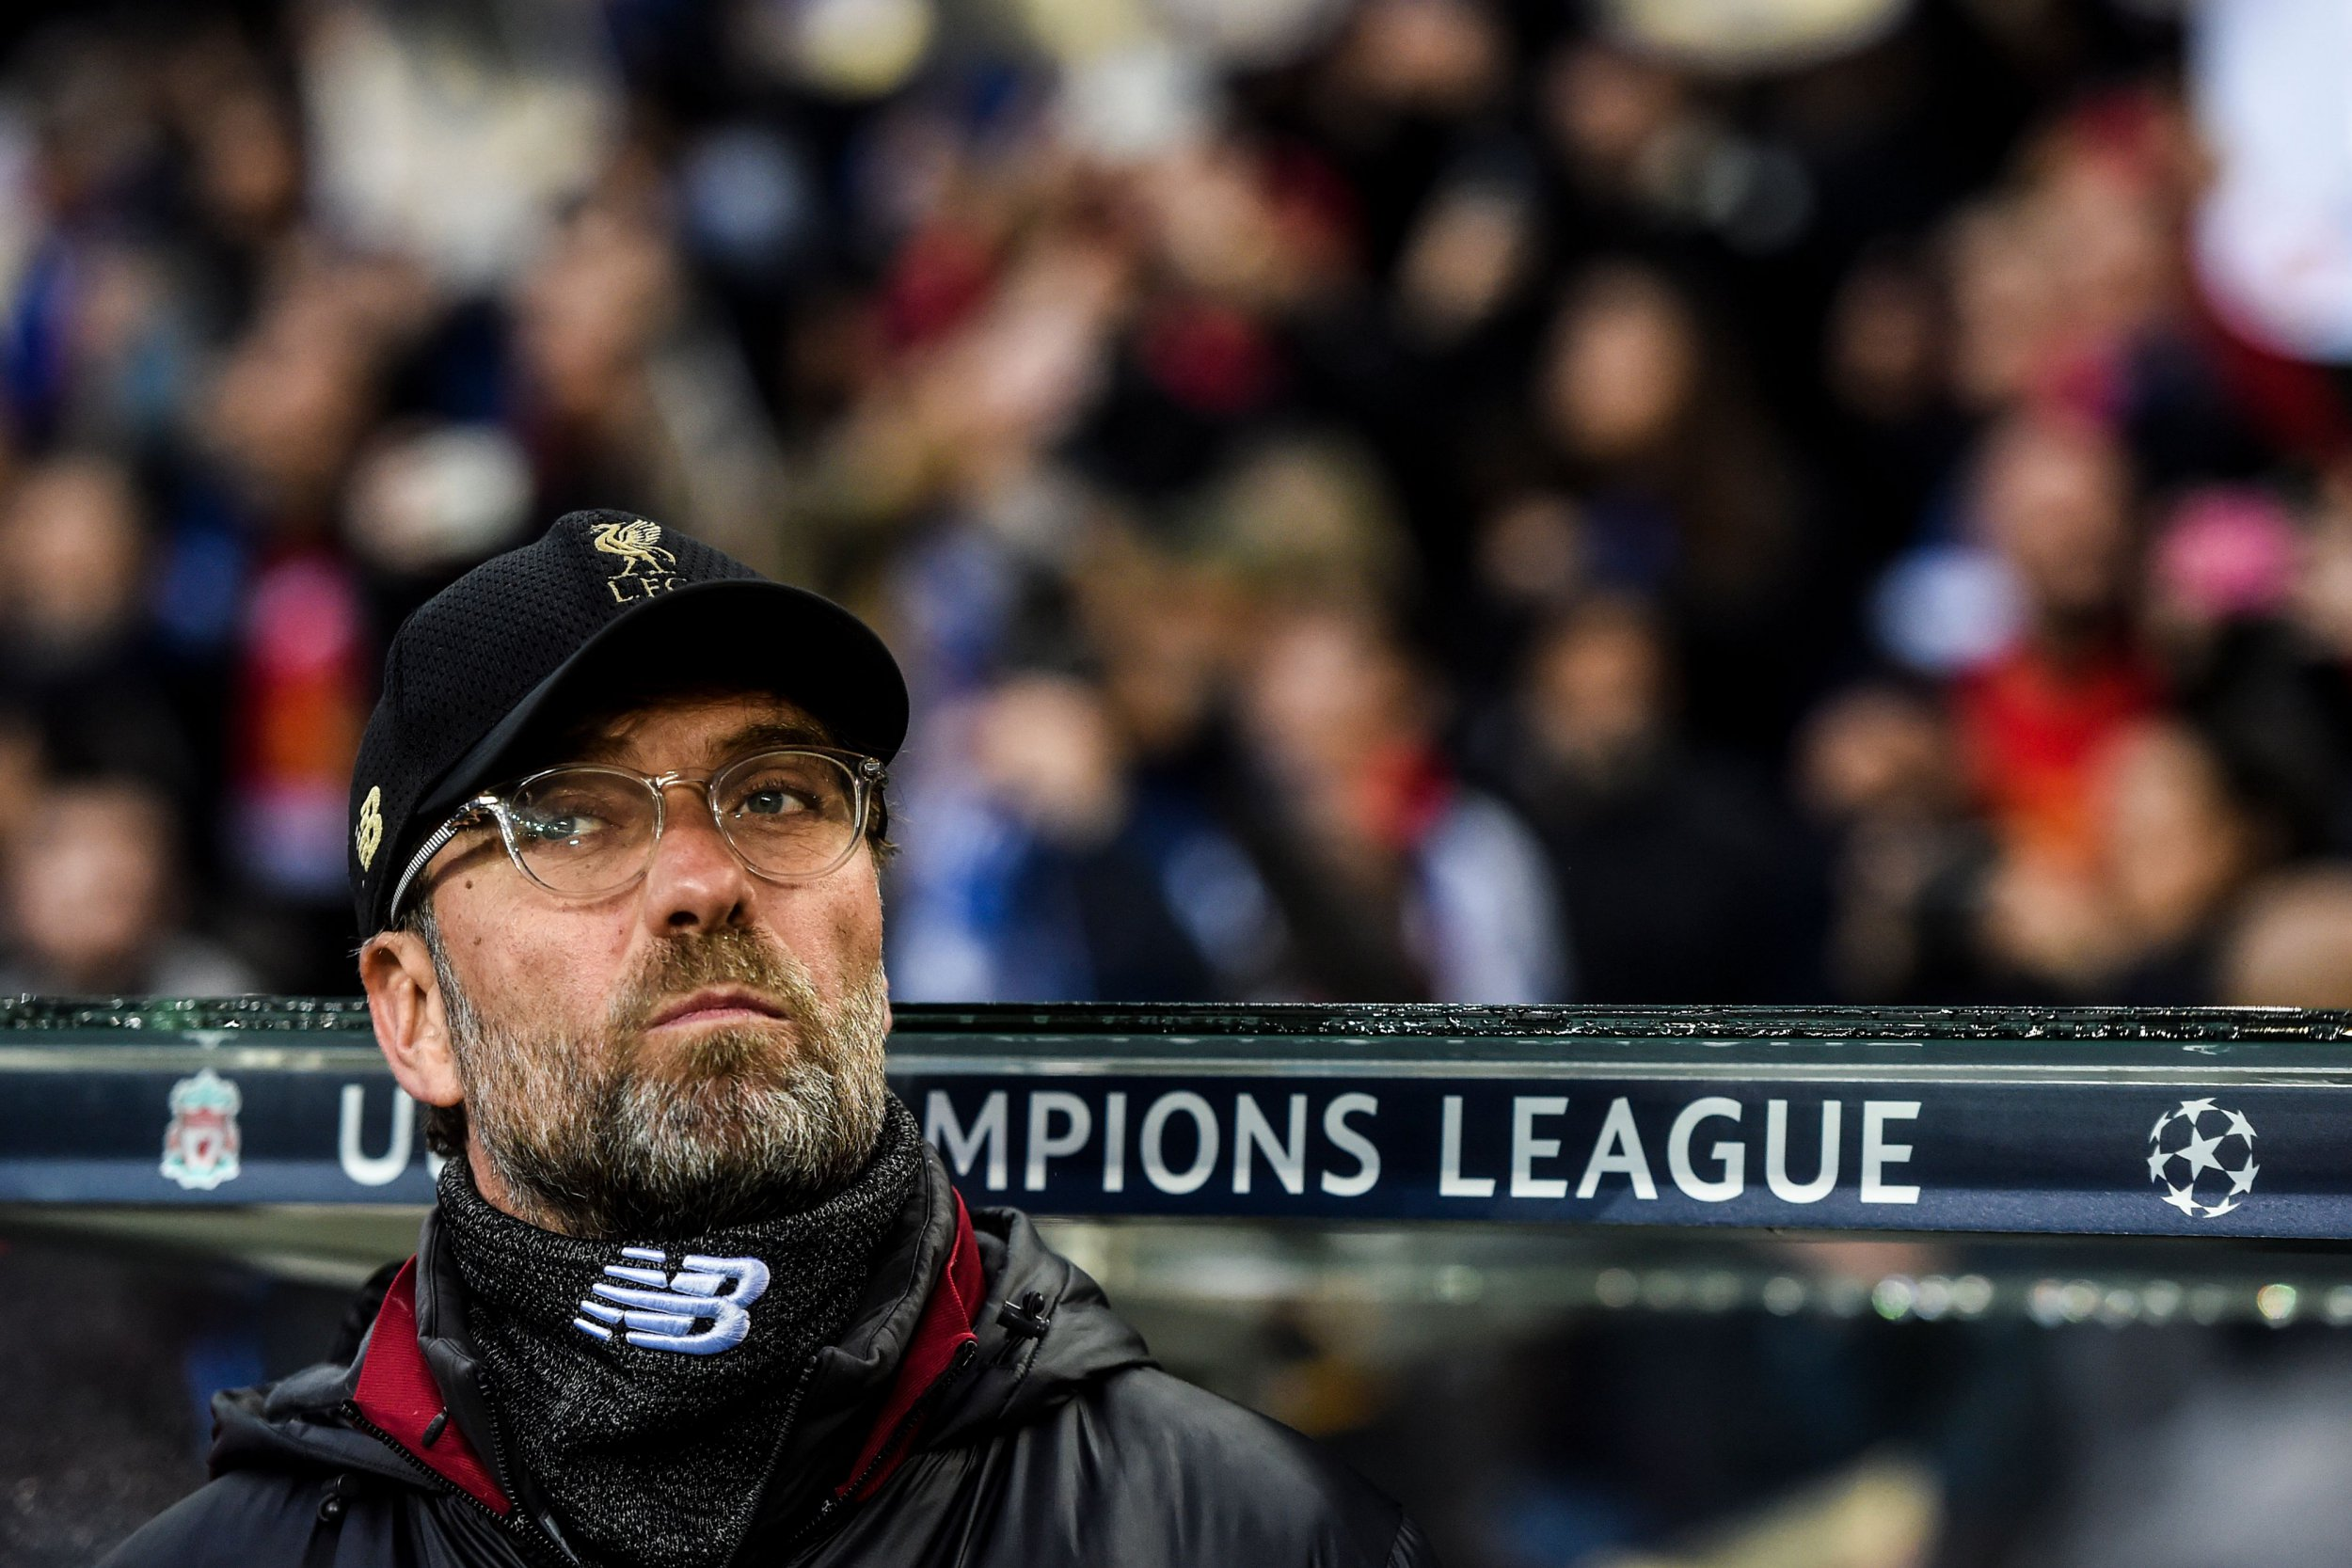 Liverpool's German coach Jurgen Klopp looks on before the UEFA Champions League quarter-final second leg football match between FC Porto and Liverpool at the Dragao stadium in Porto on April 17, 2019. (Photo by PATRICIA DE MELO MOREIRA / AFP)PATRICIA DE MELO MOREIRA/AFP/Getty Images